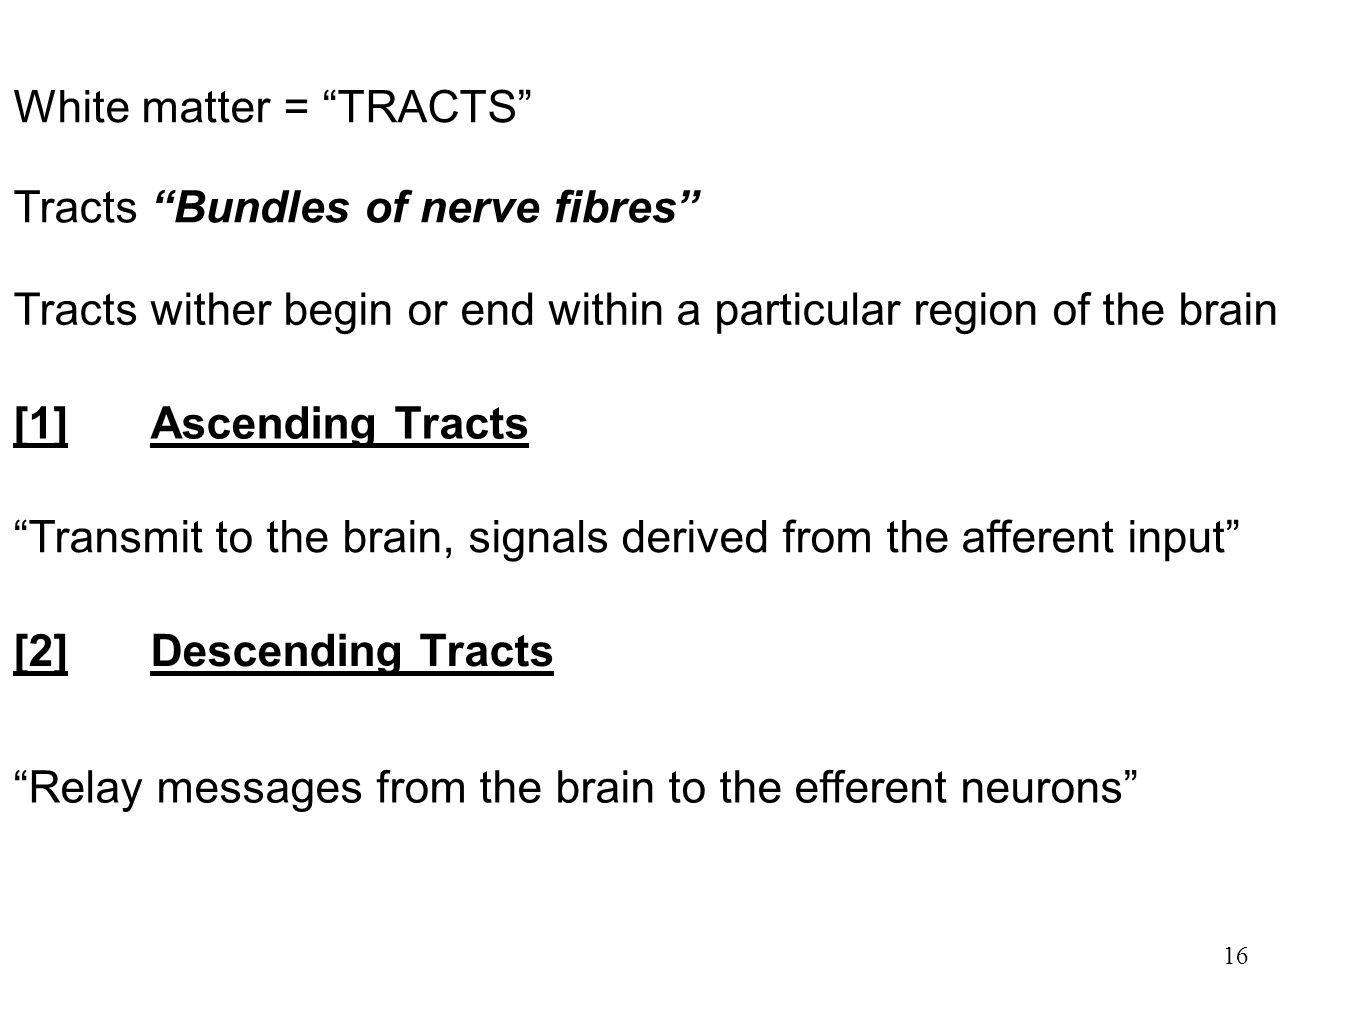 White matter = TRACTS